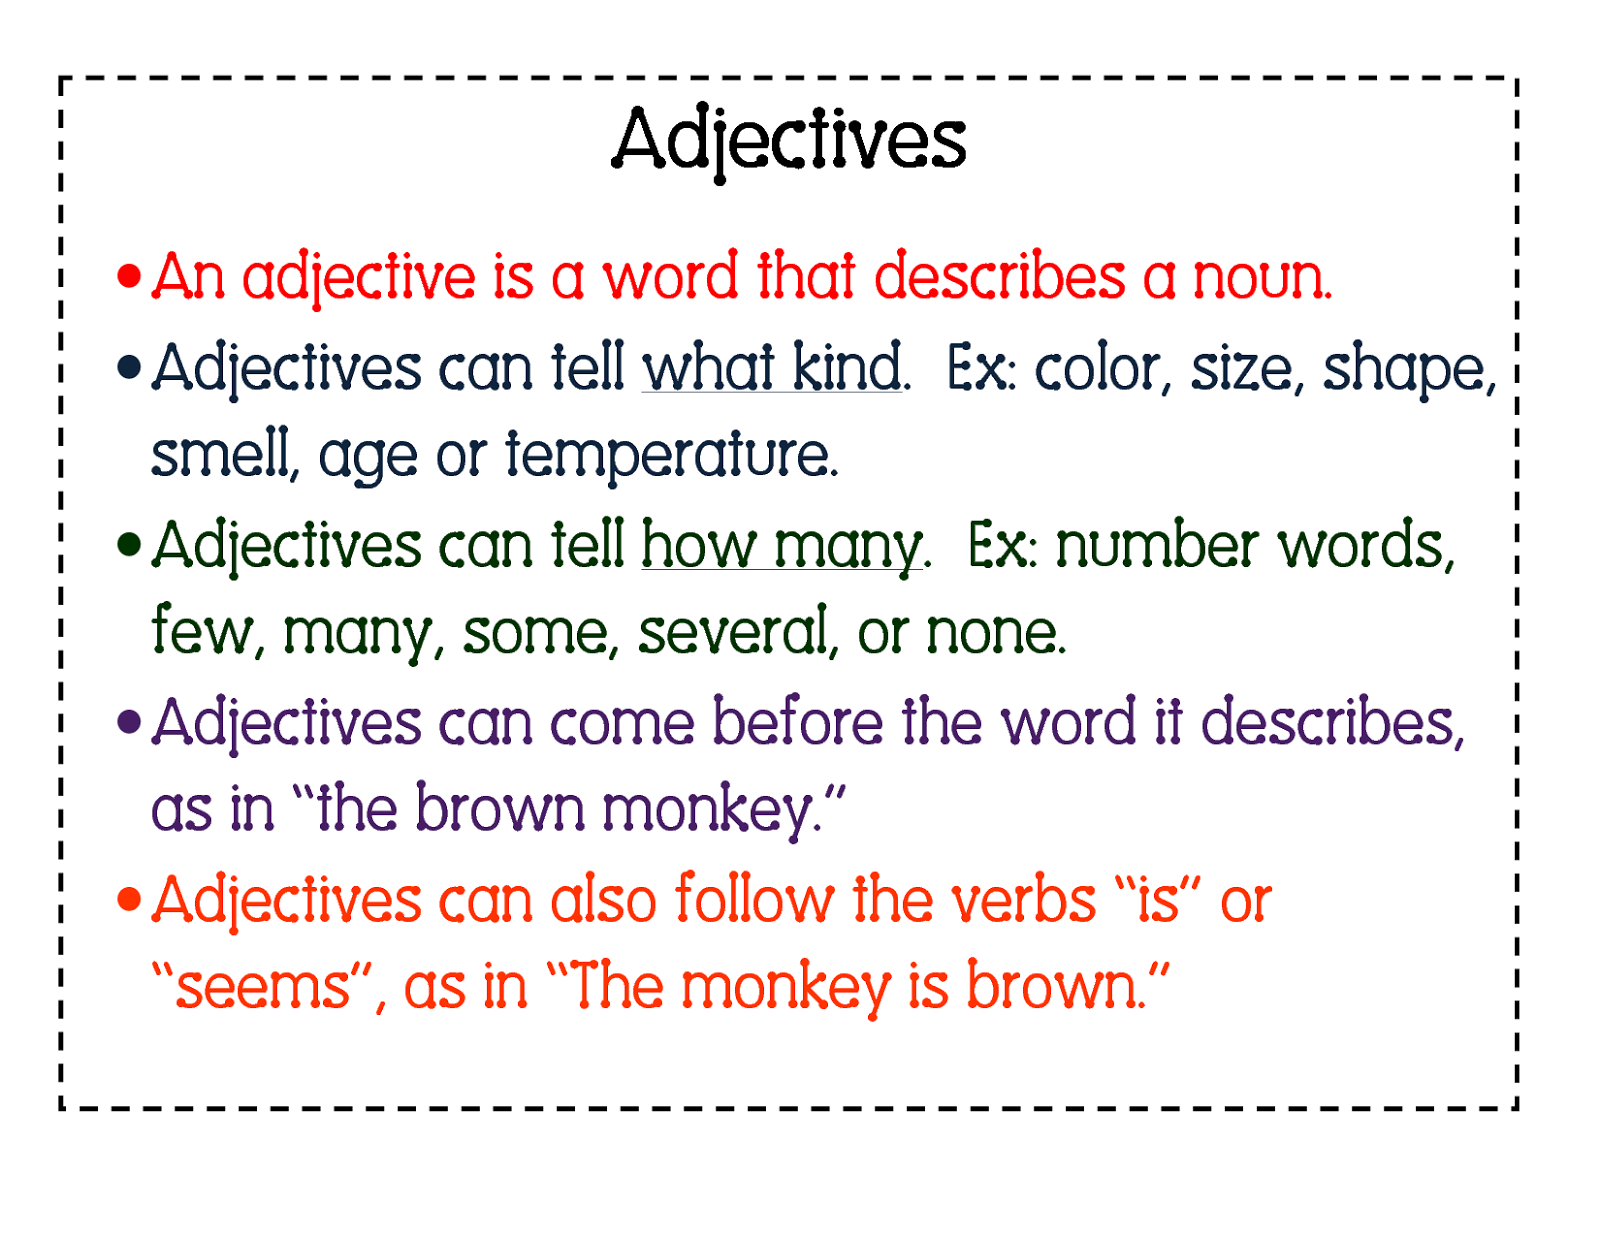 Adjectives Vocabulary Word List - Enchanted Learning